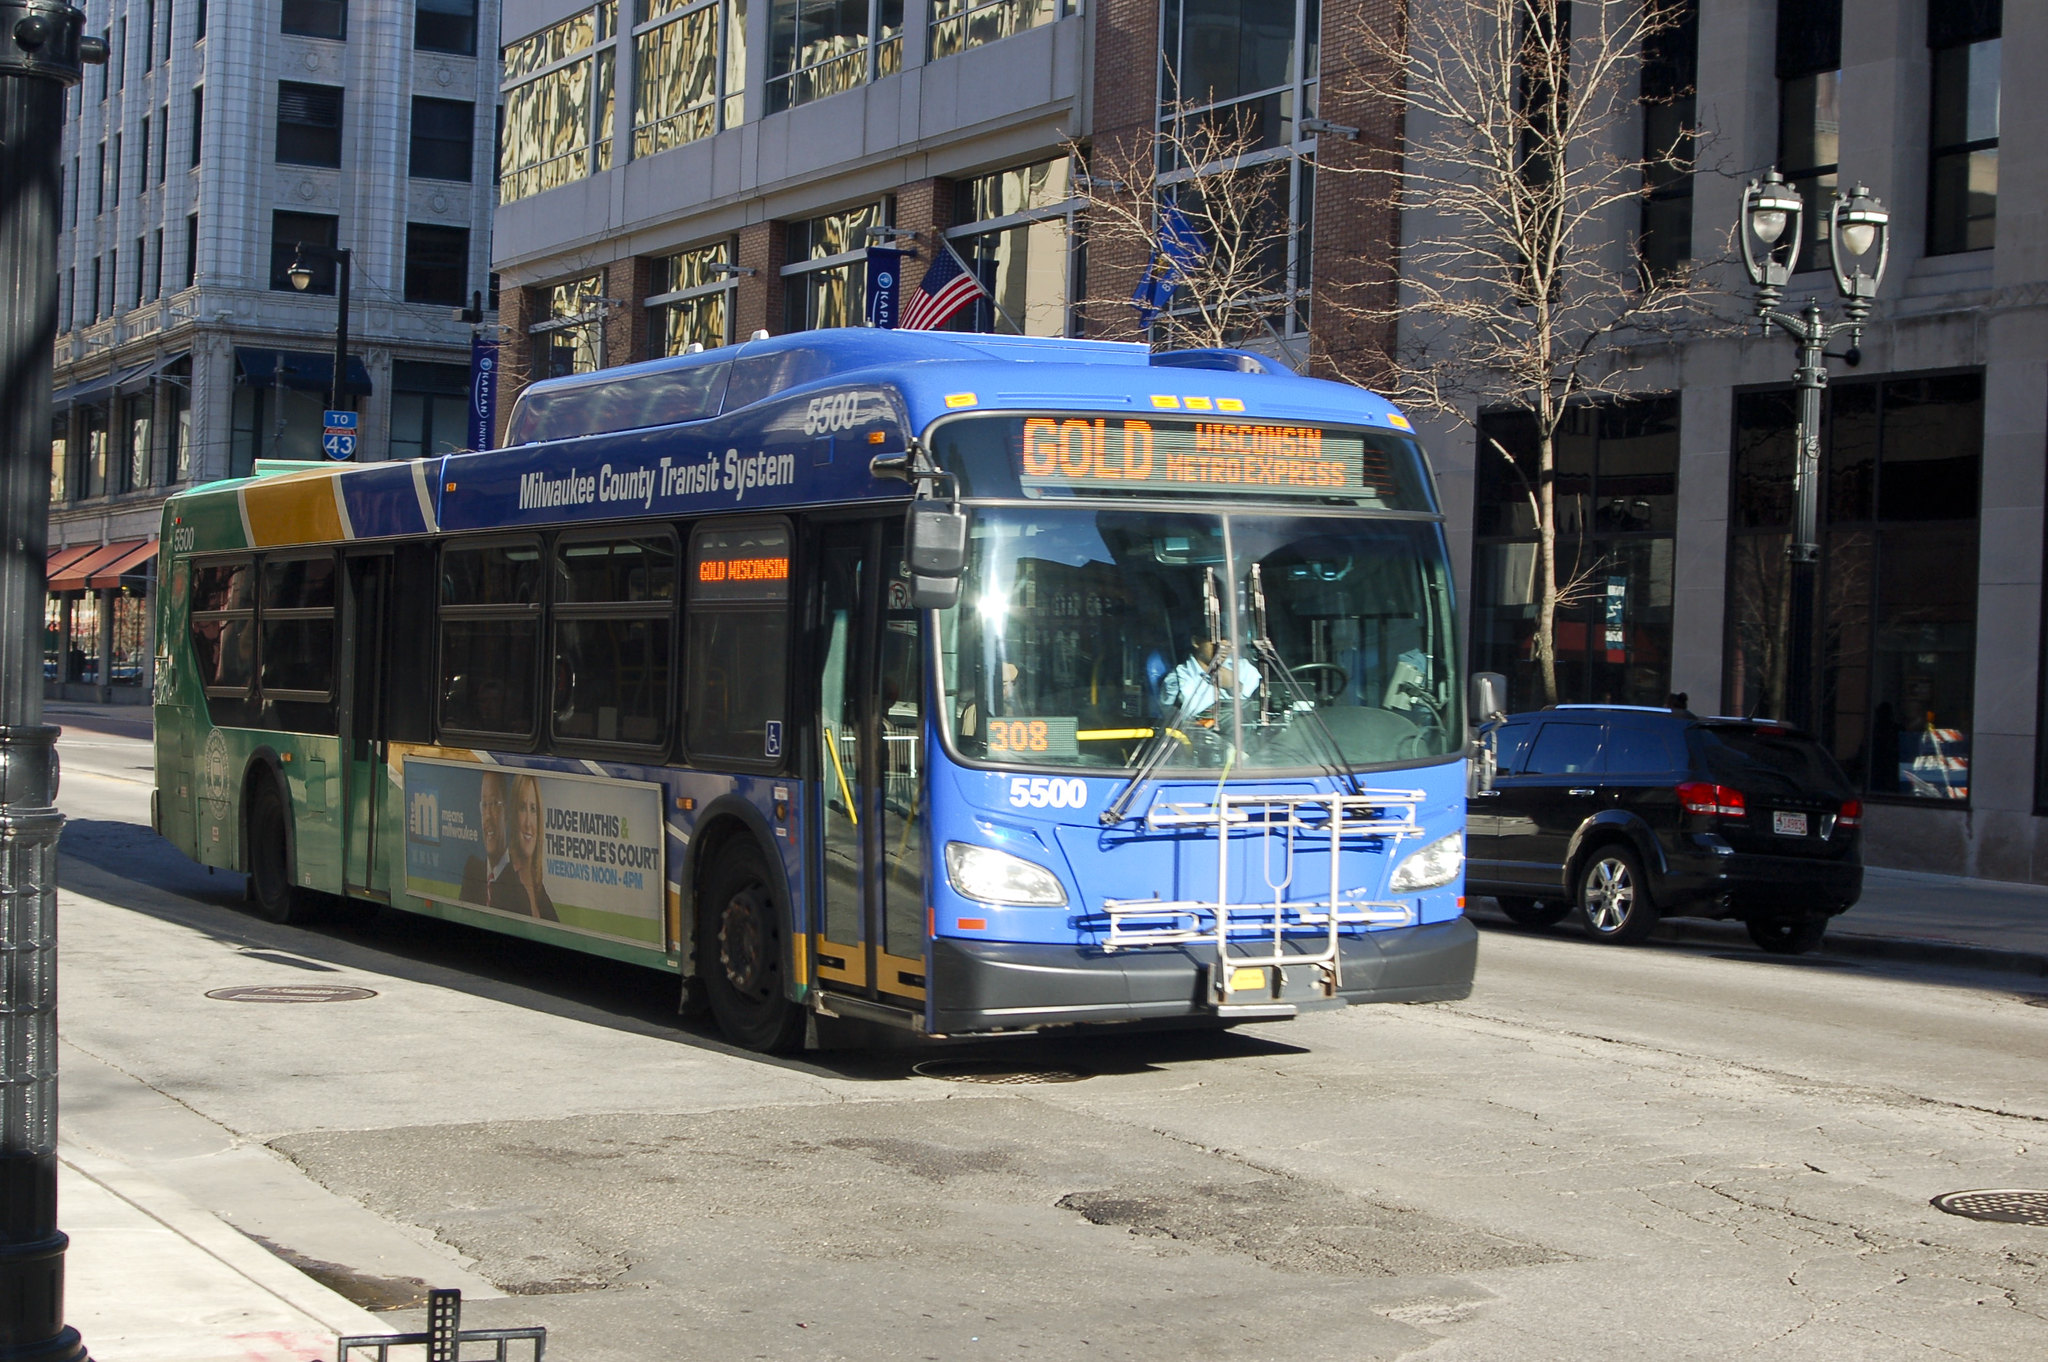 Bus routes throughout Milwaukee County will change beginning March 7. Here's what you need to know.